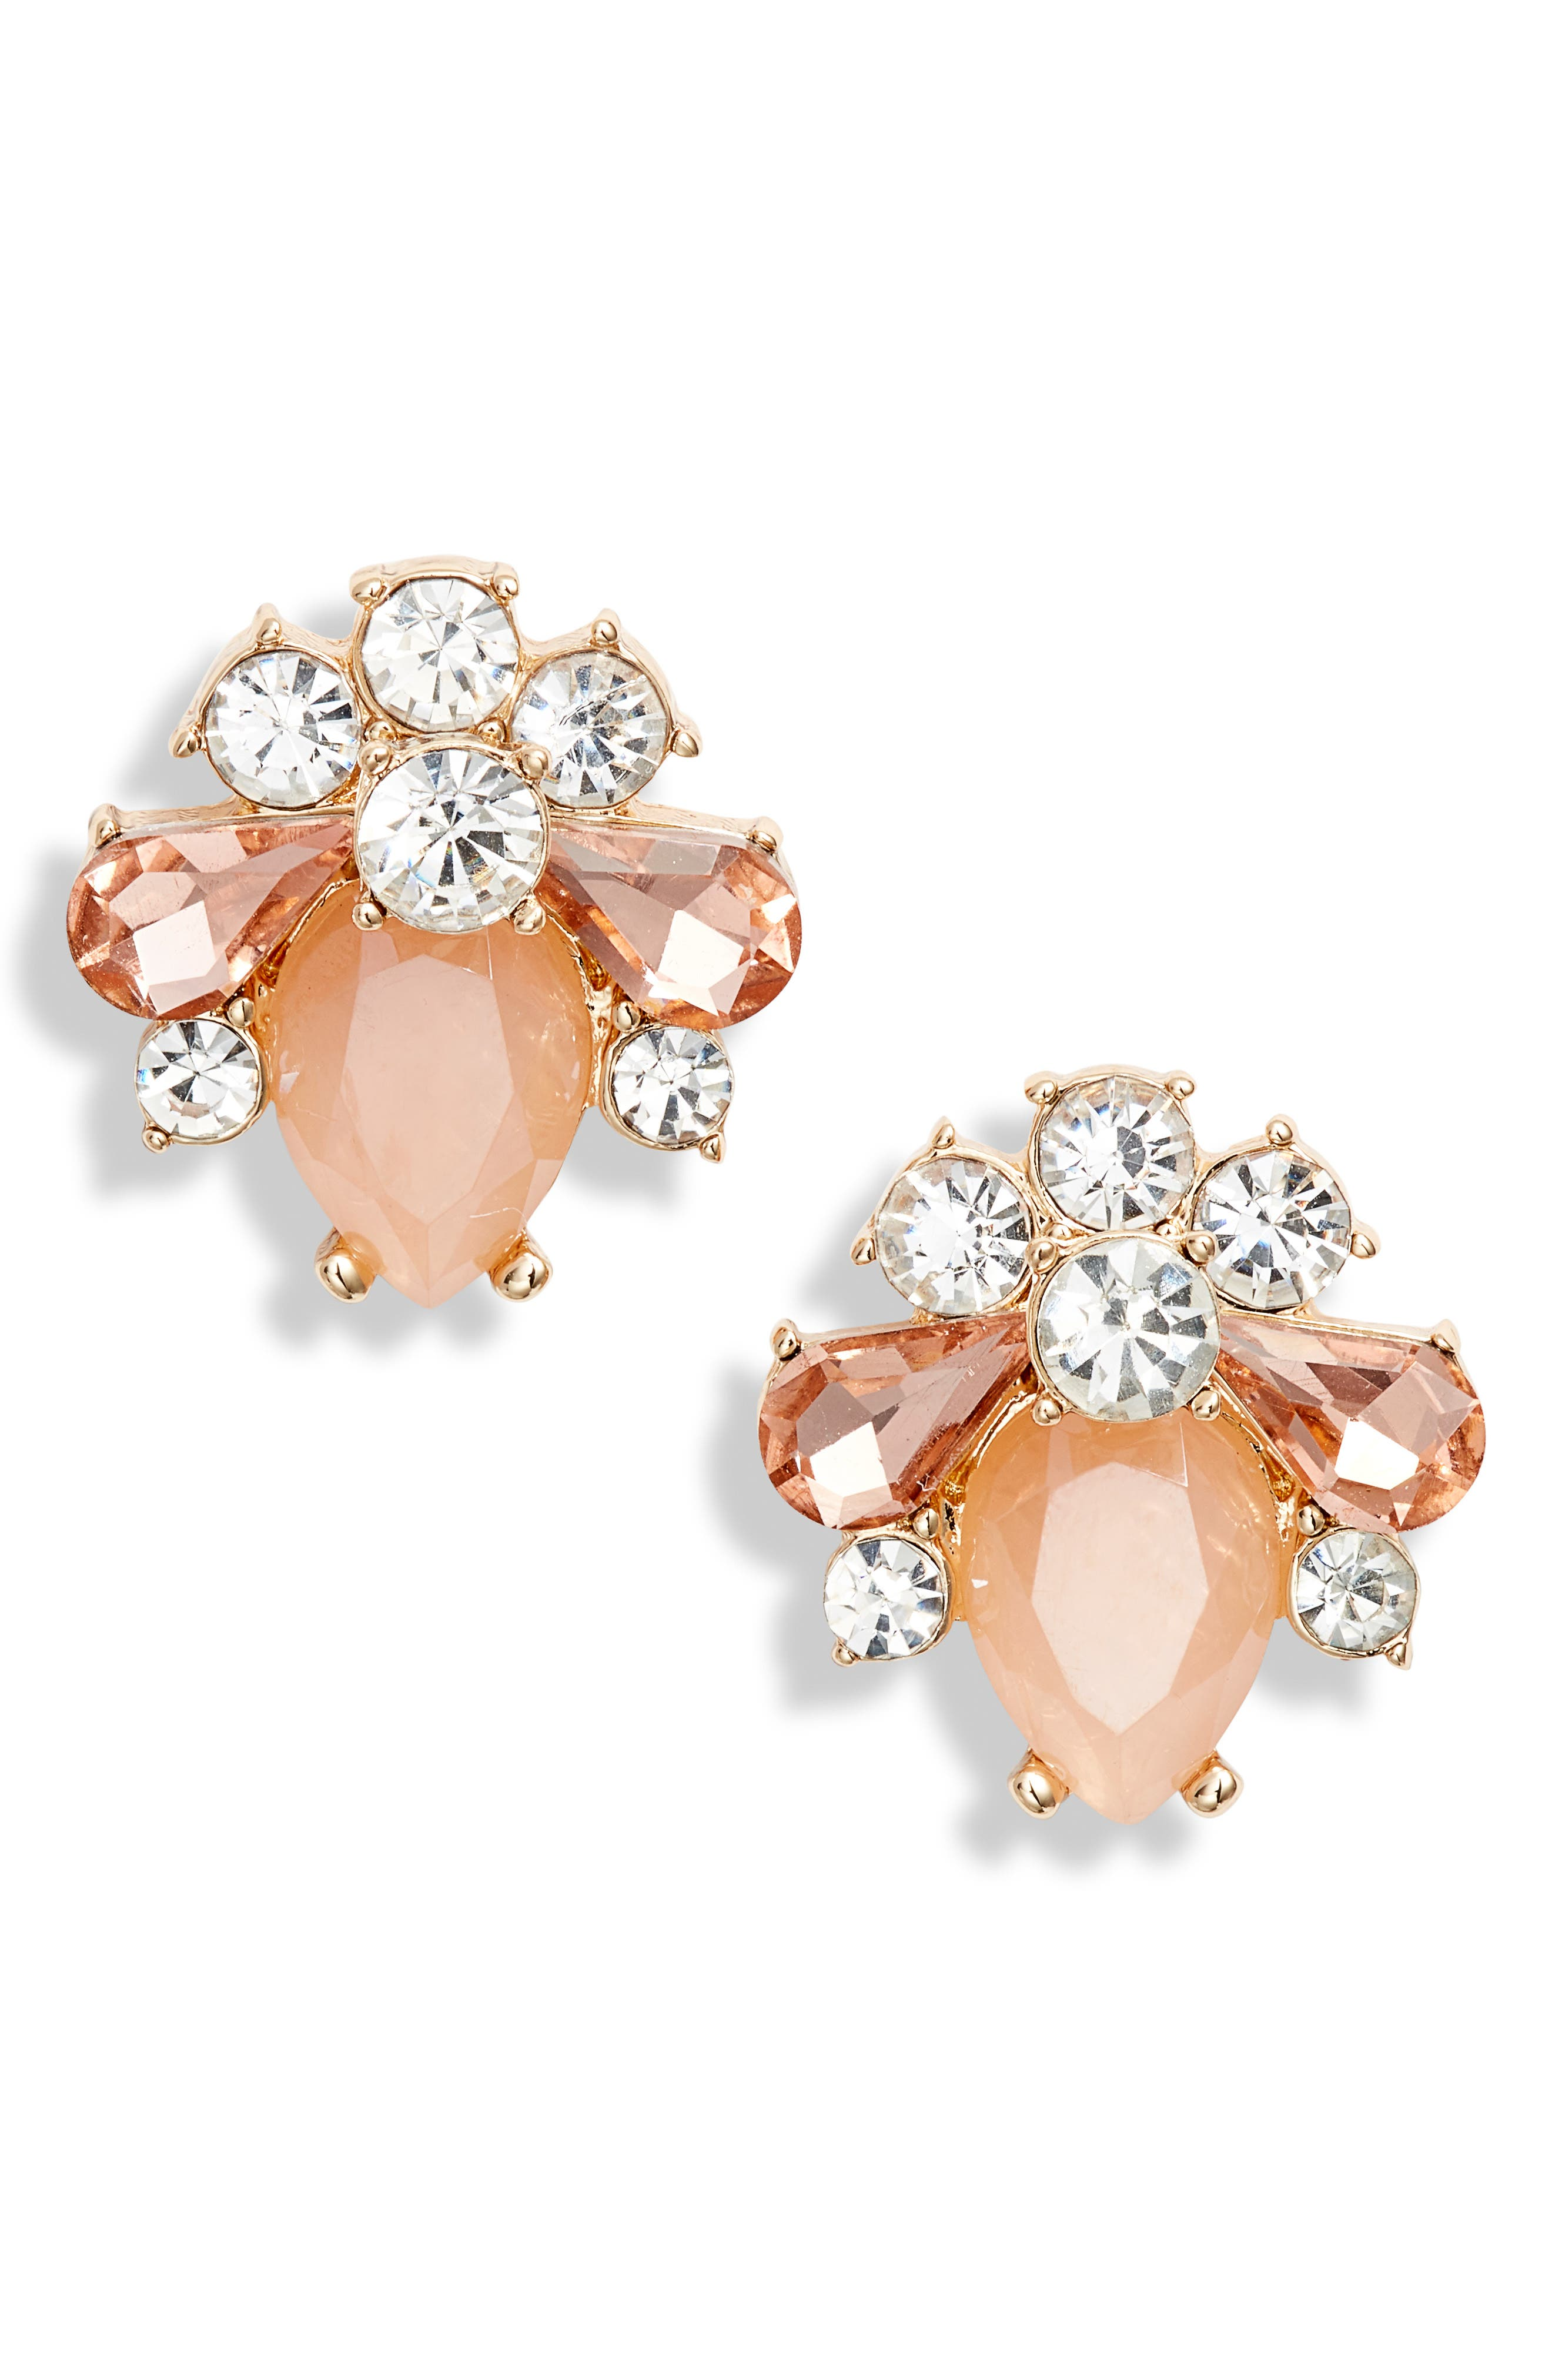 RACHEL PARCELL, Cluster Button Stud Earrings, Main thumbnail 1, color, PINK PEARL- GOLD